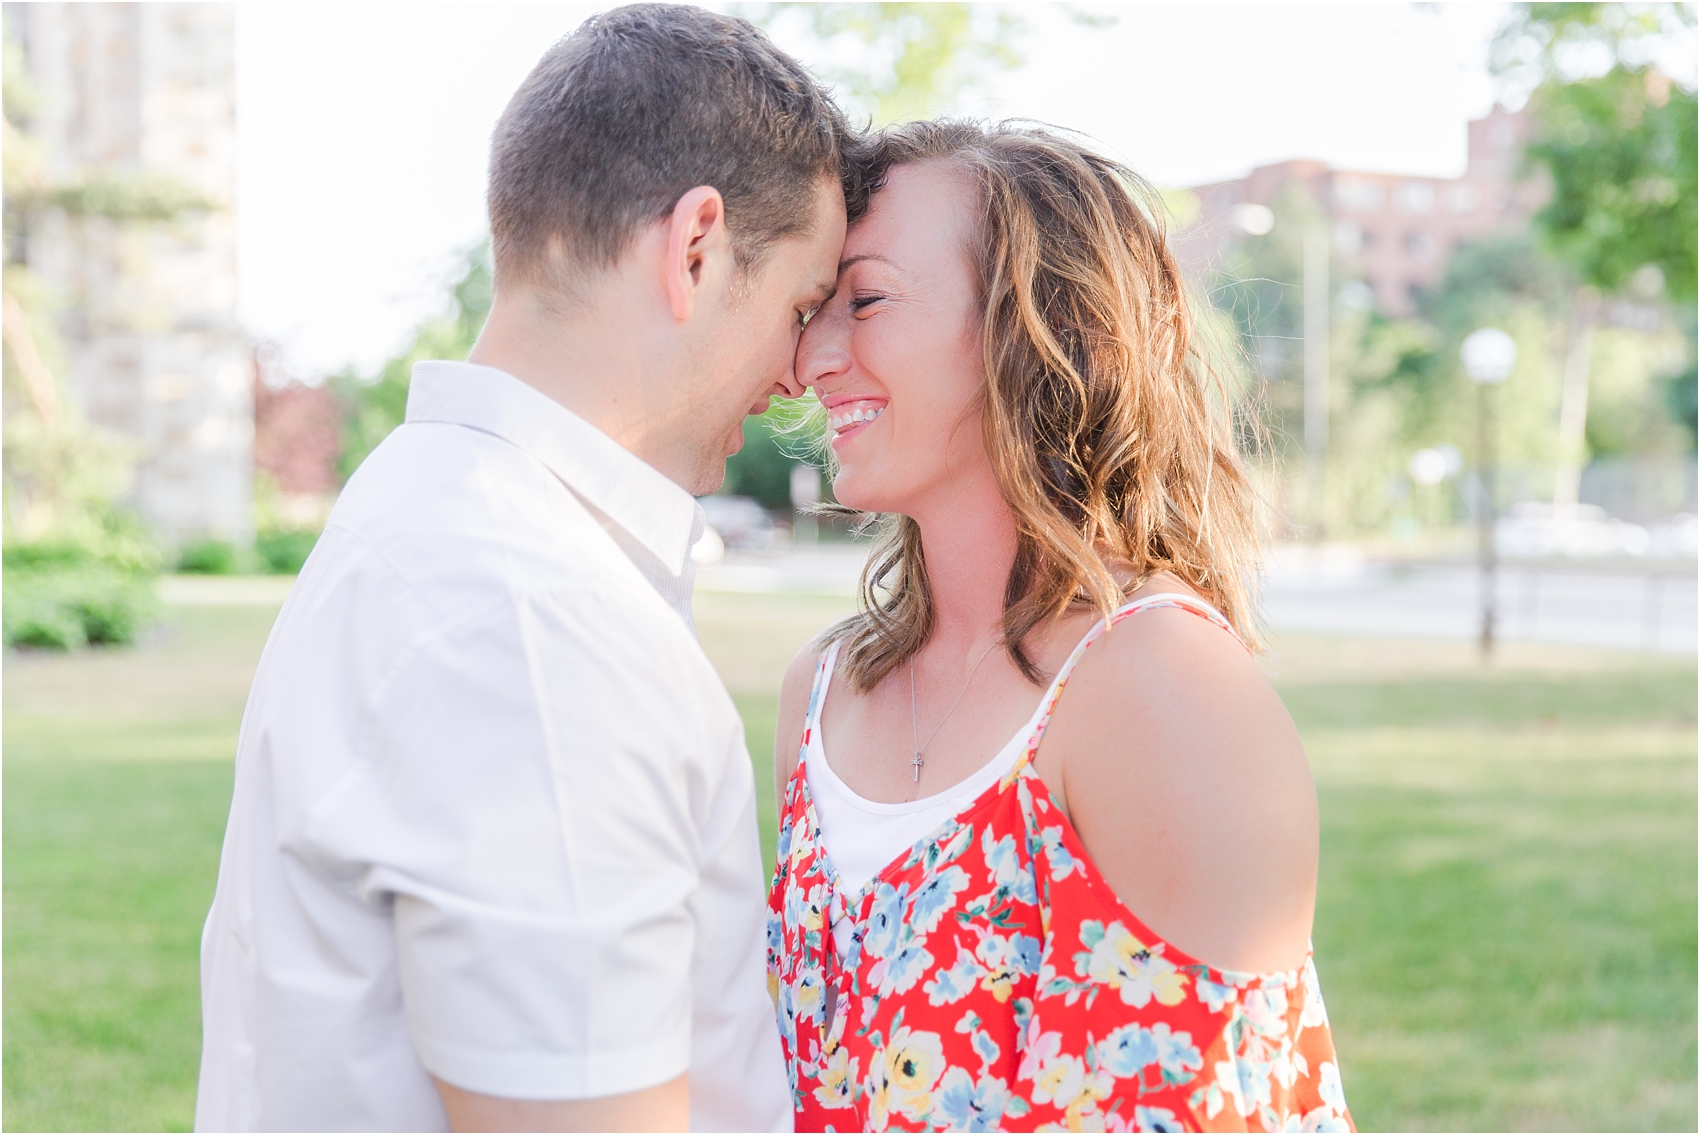 fun-adventurous-engagement-photos-at-the-nickels-arcade-in-ann-arbor-mi-by-courtney-carolyn-photography_0019.jpg